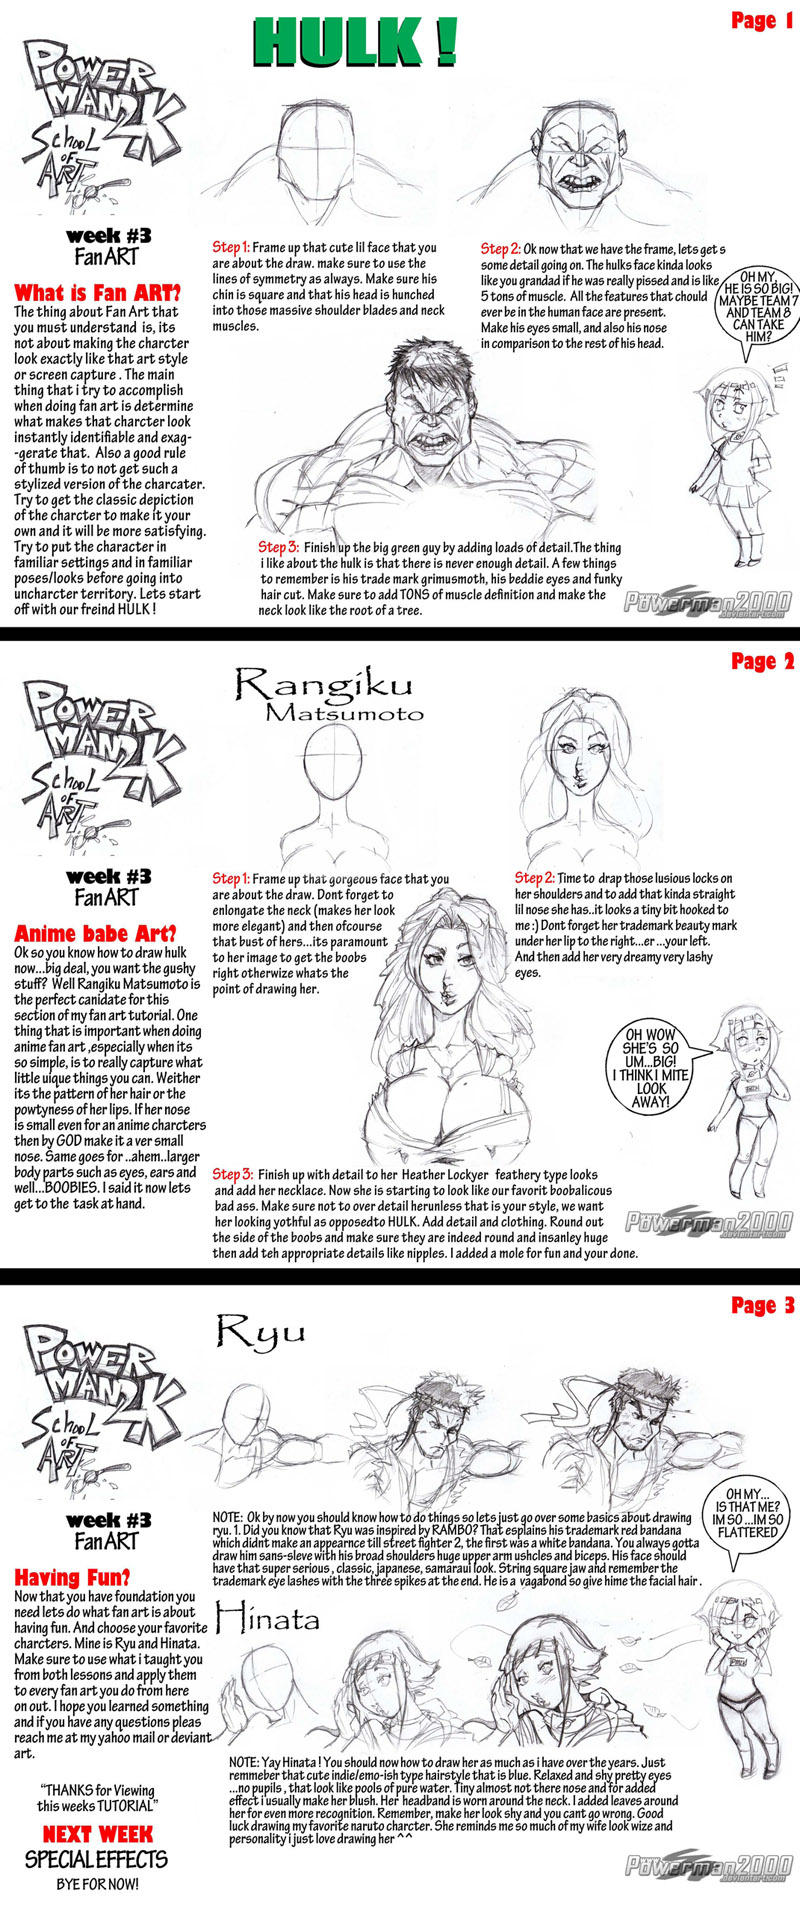 Tutorial: How to draw fanart by powerman2000